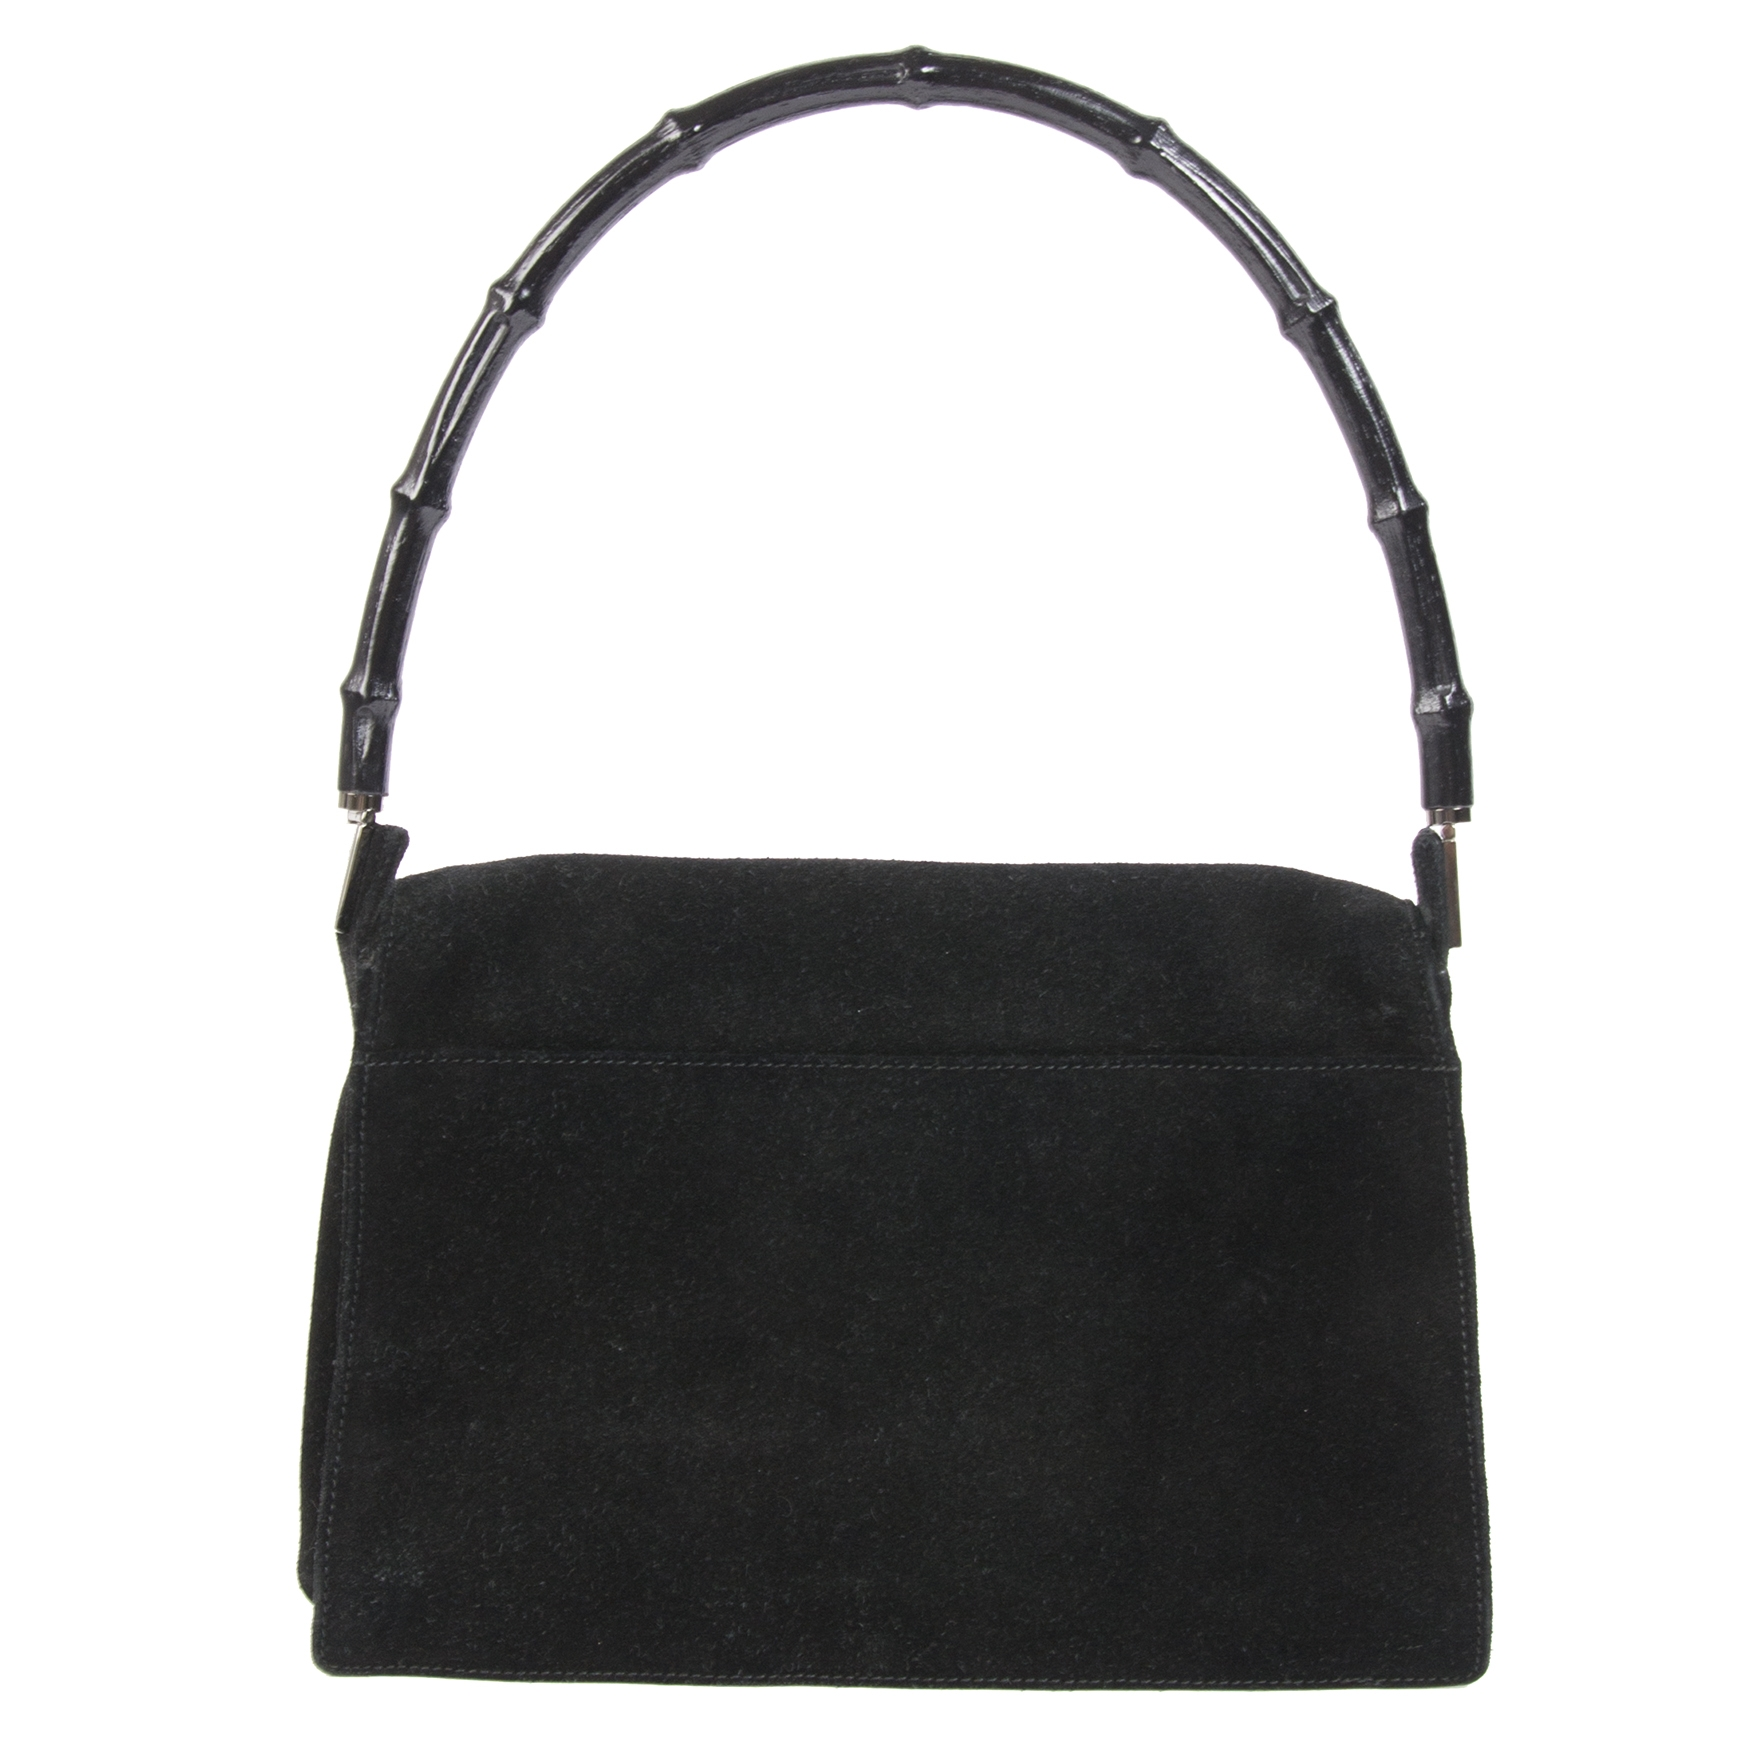 48df2f446327b6 ... Gucci Black Suede Bamboo Shoulder Bag available at Labellov secondhand  luxury in Antwerp